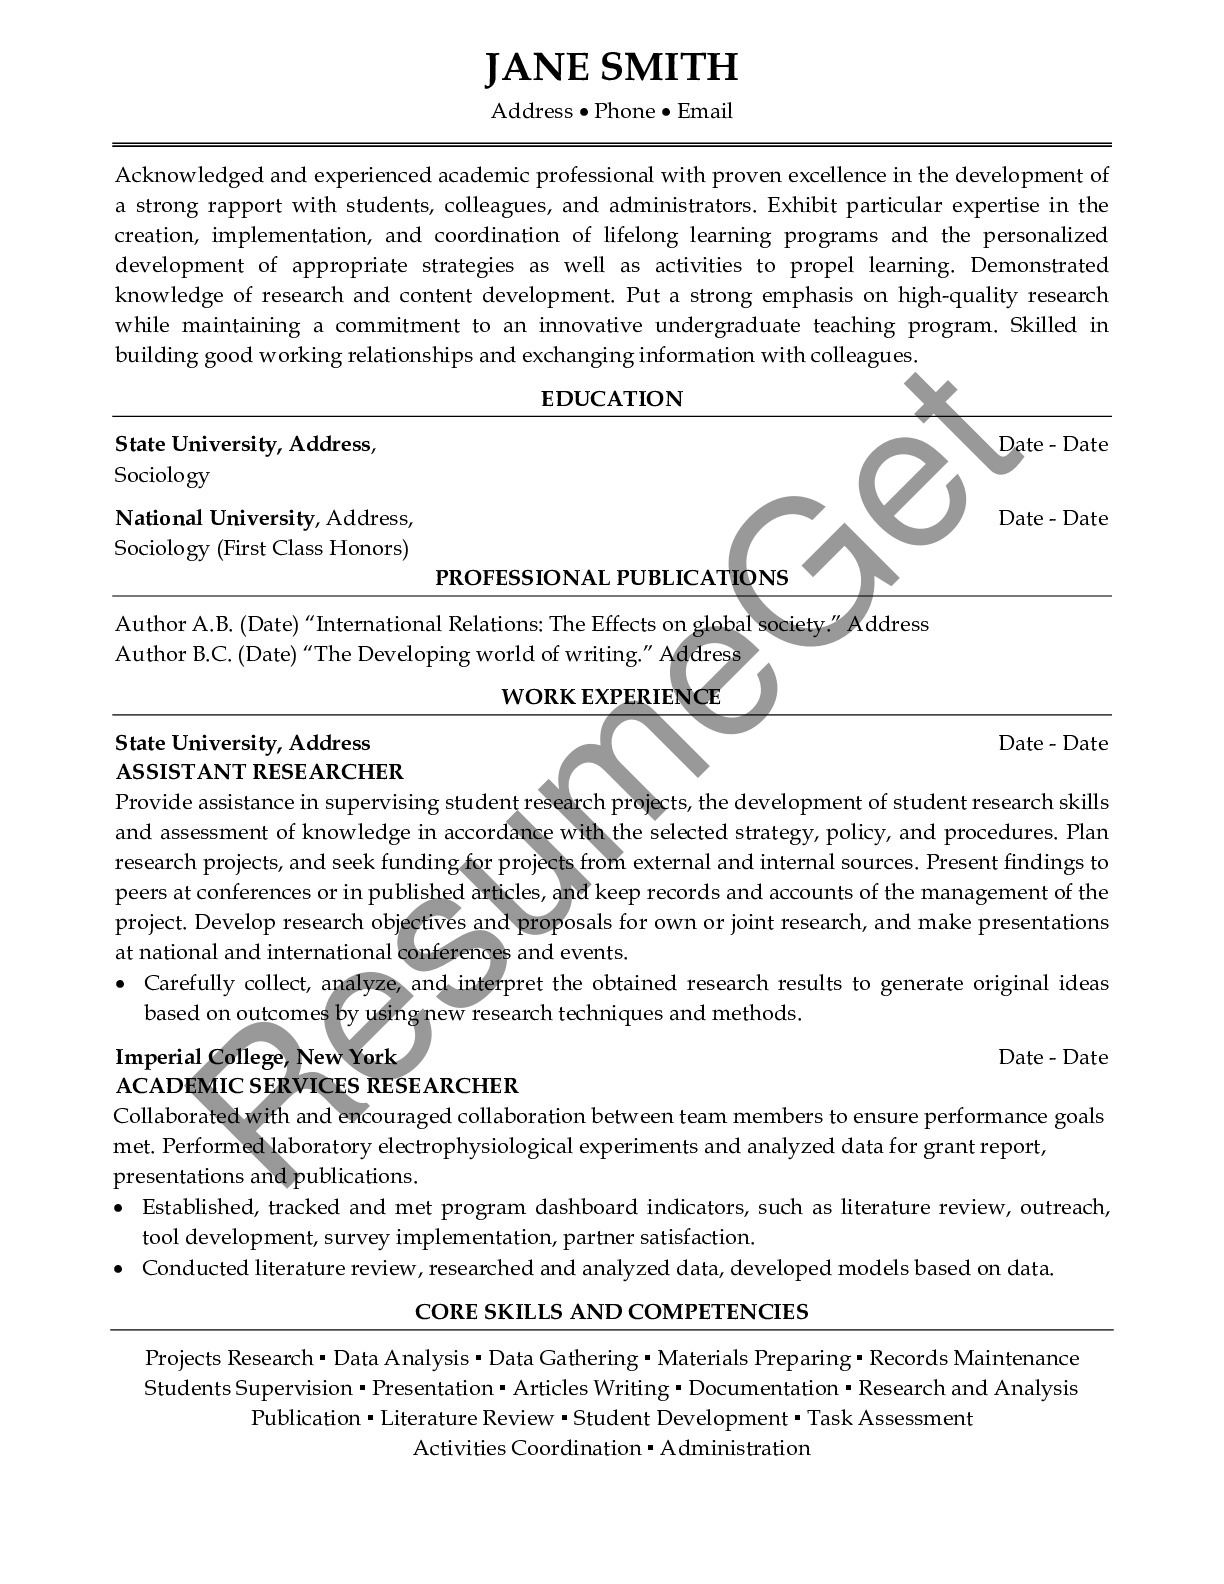 CV for Academic Professional